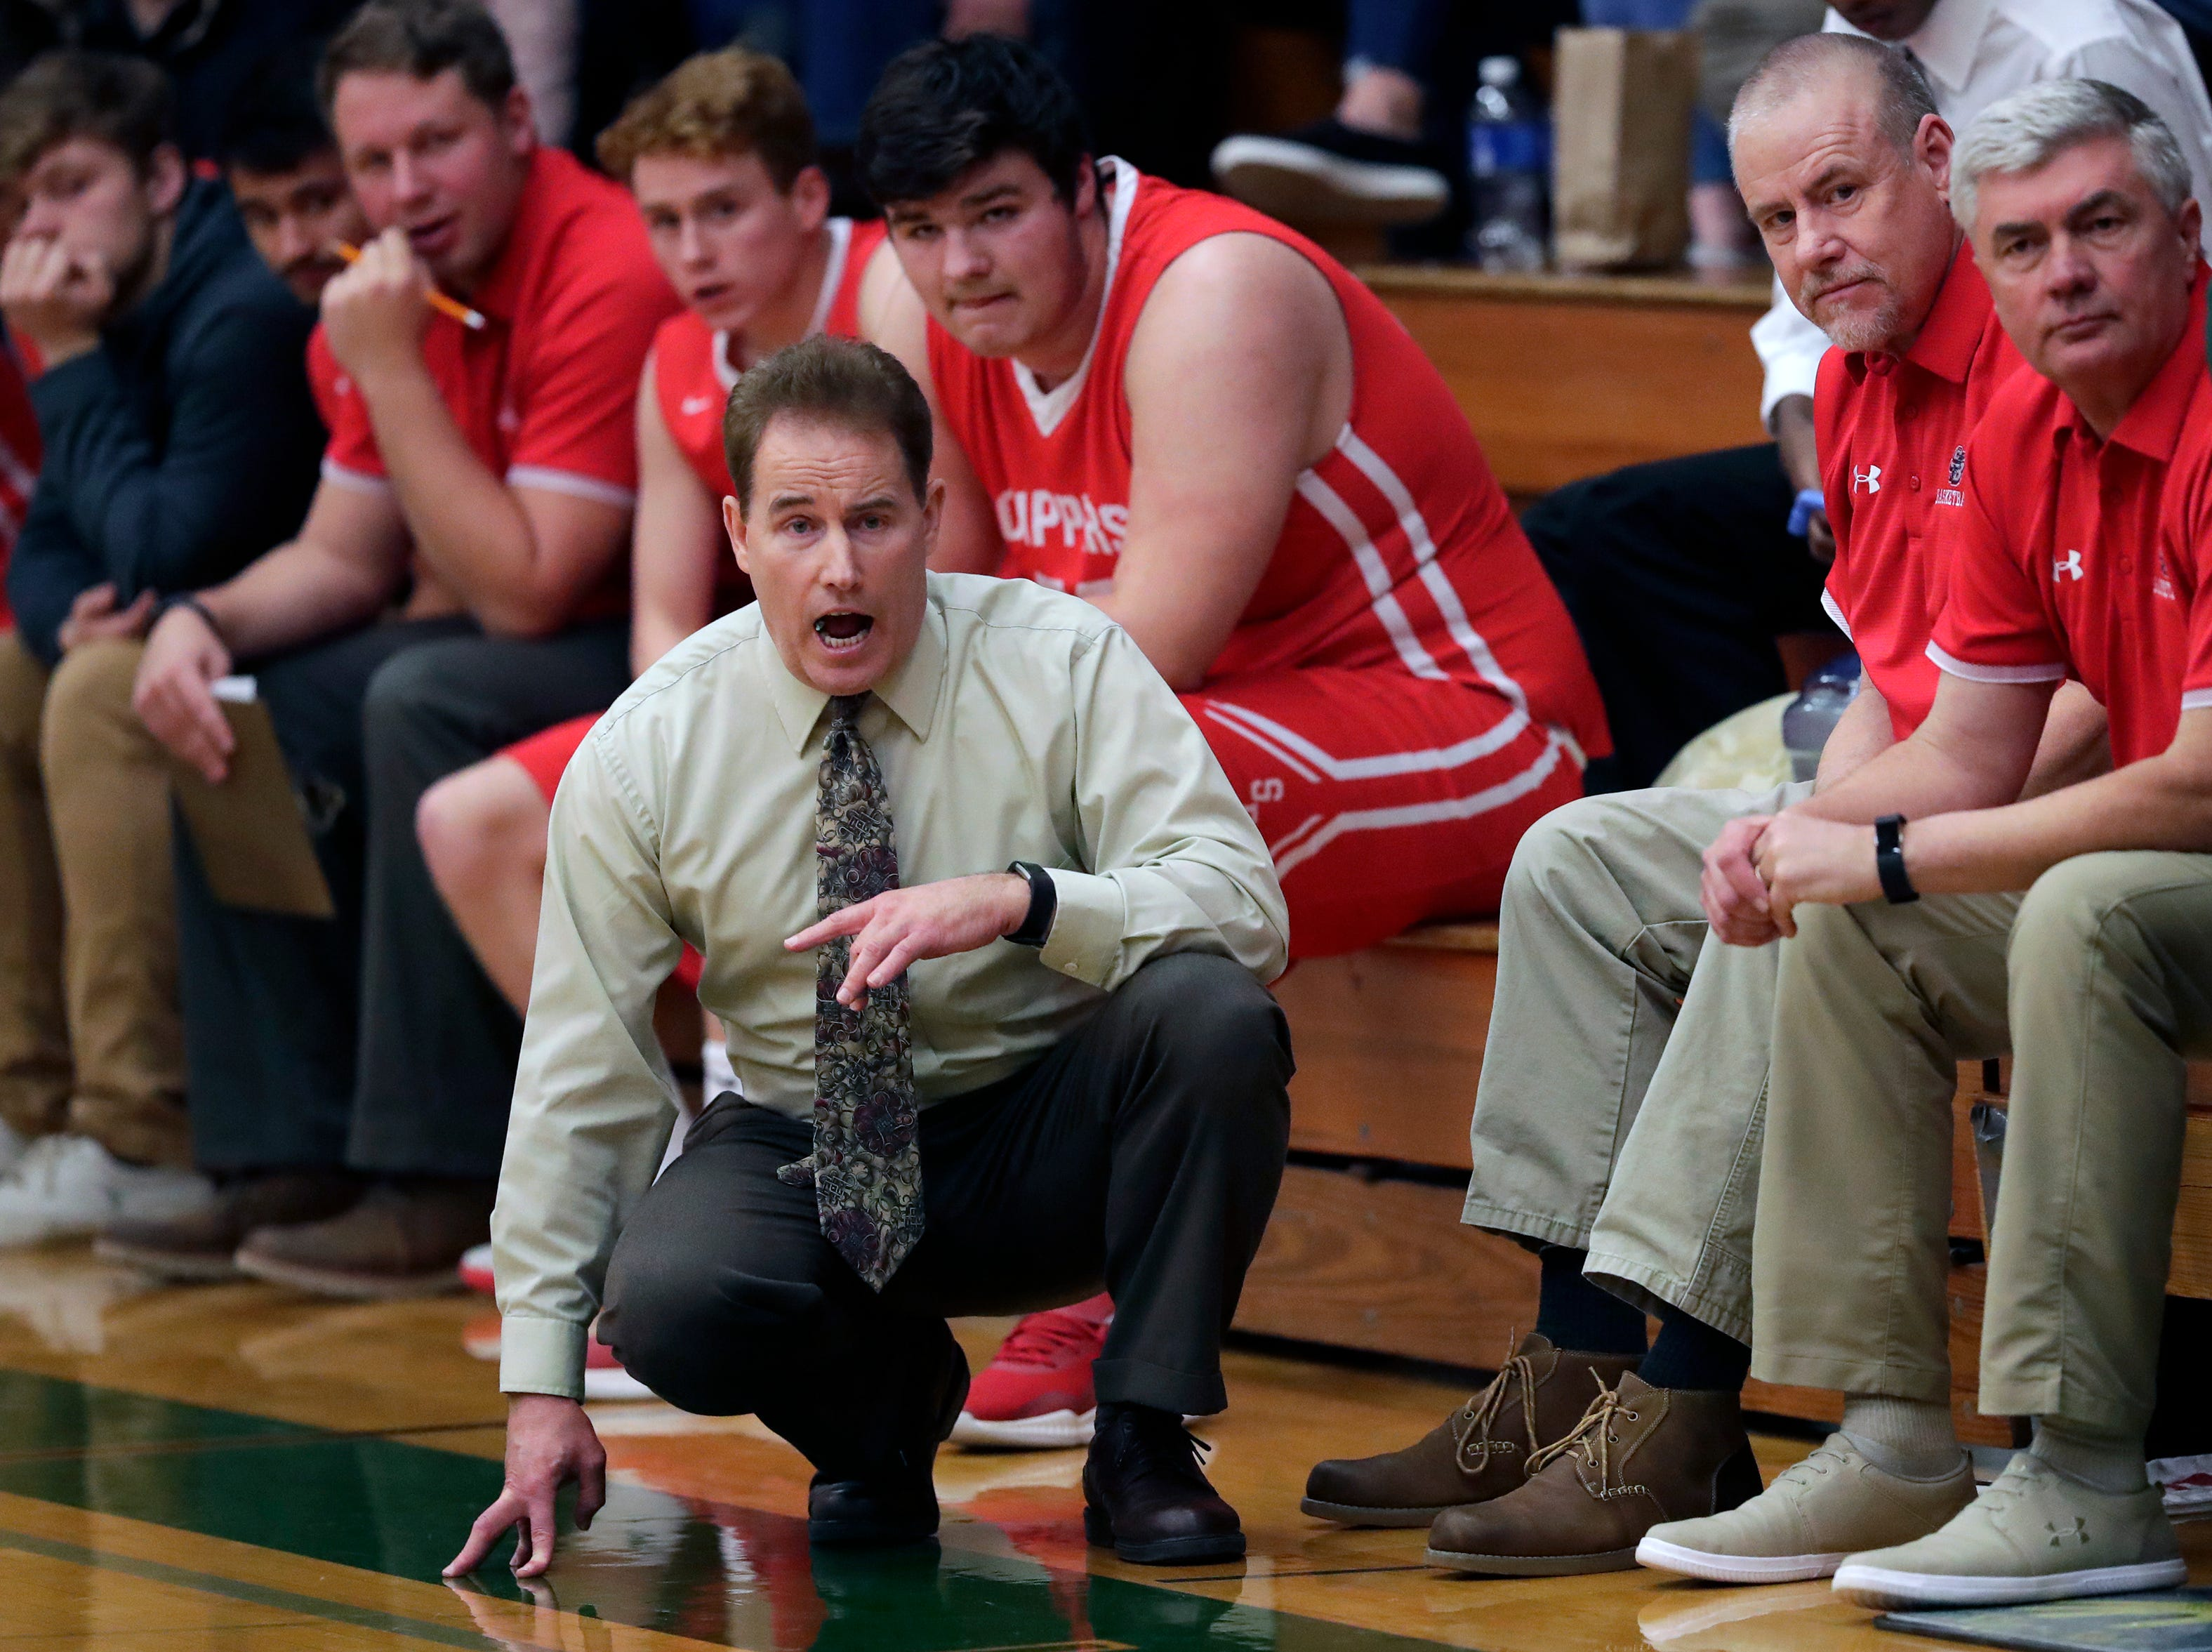 Sturgeon Bay High School's coach Jim Benesh leads his team against Shiocton High School during their boys basketball game Thursday, December 27, 2018, in Shiocton, Wis. 